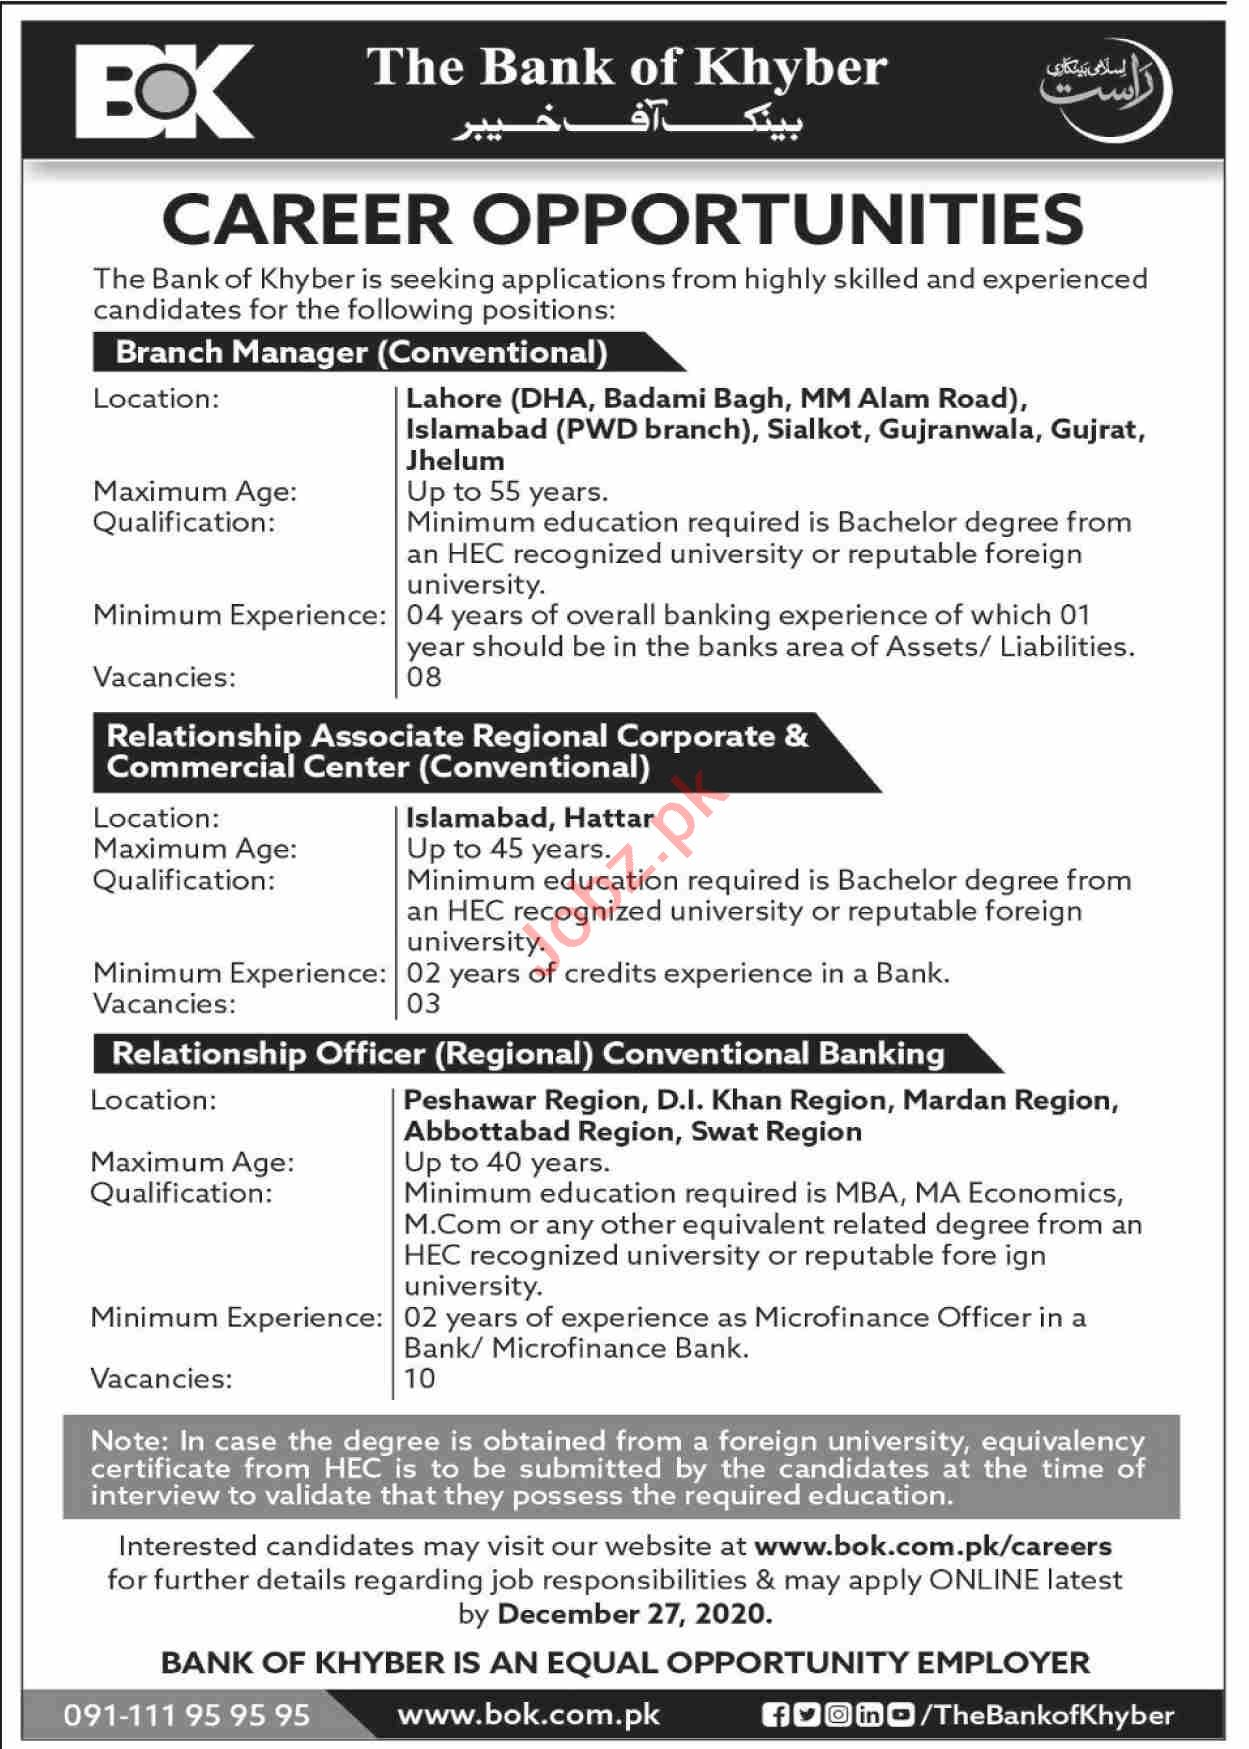 The Bank of Khyber BOK Jobs 2020 for Branch Manager